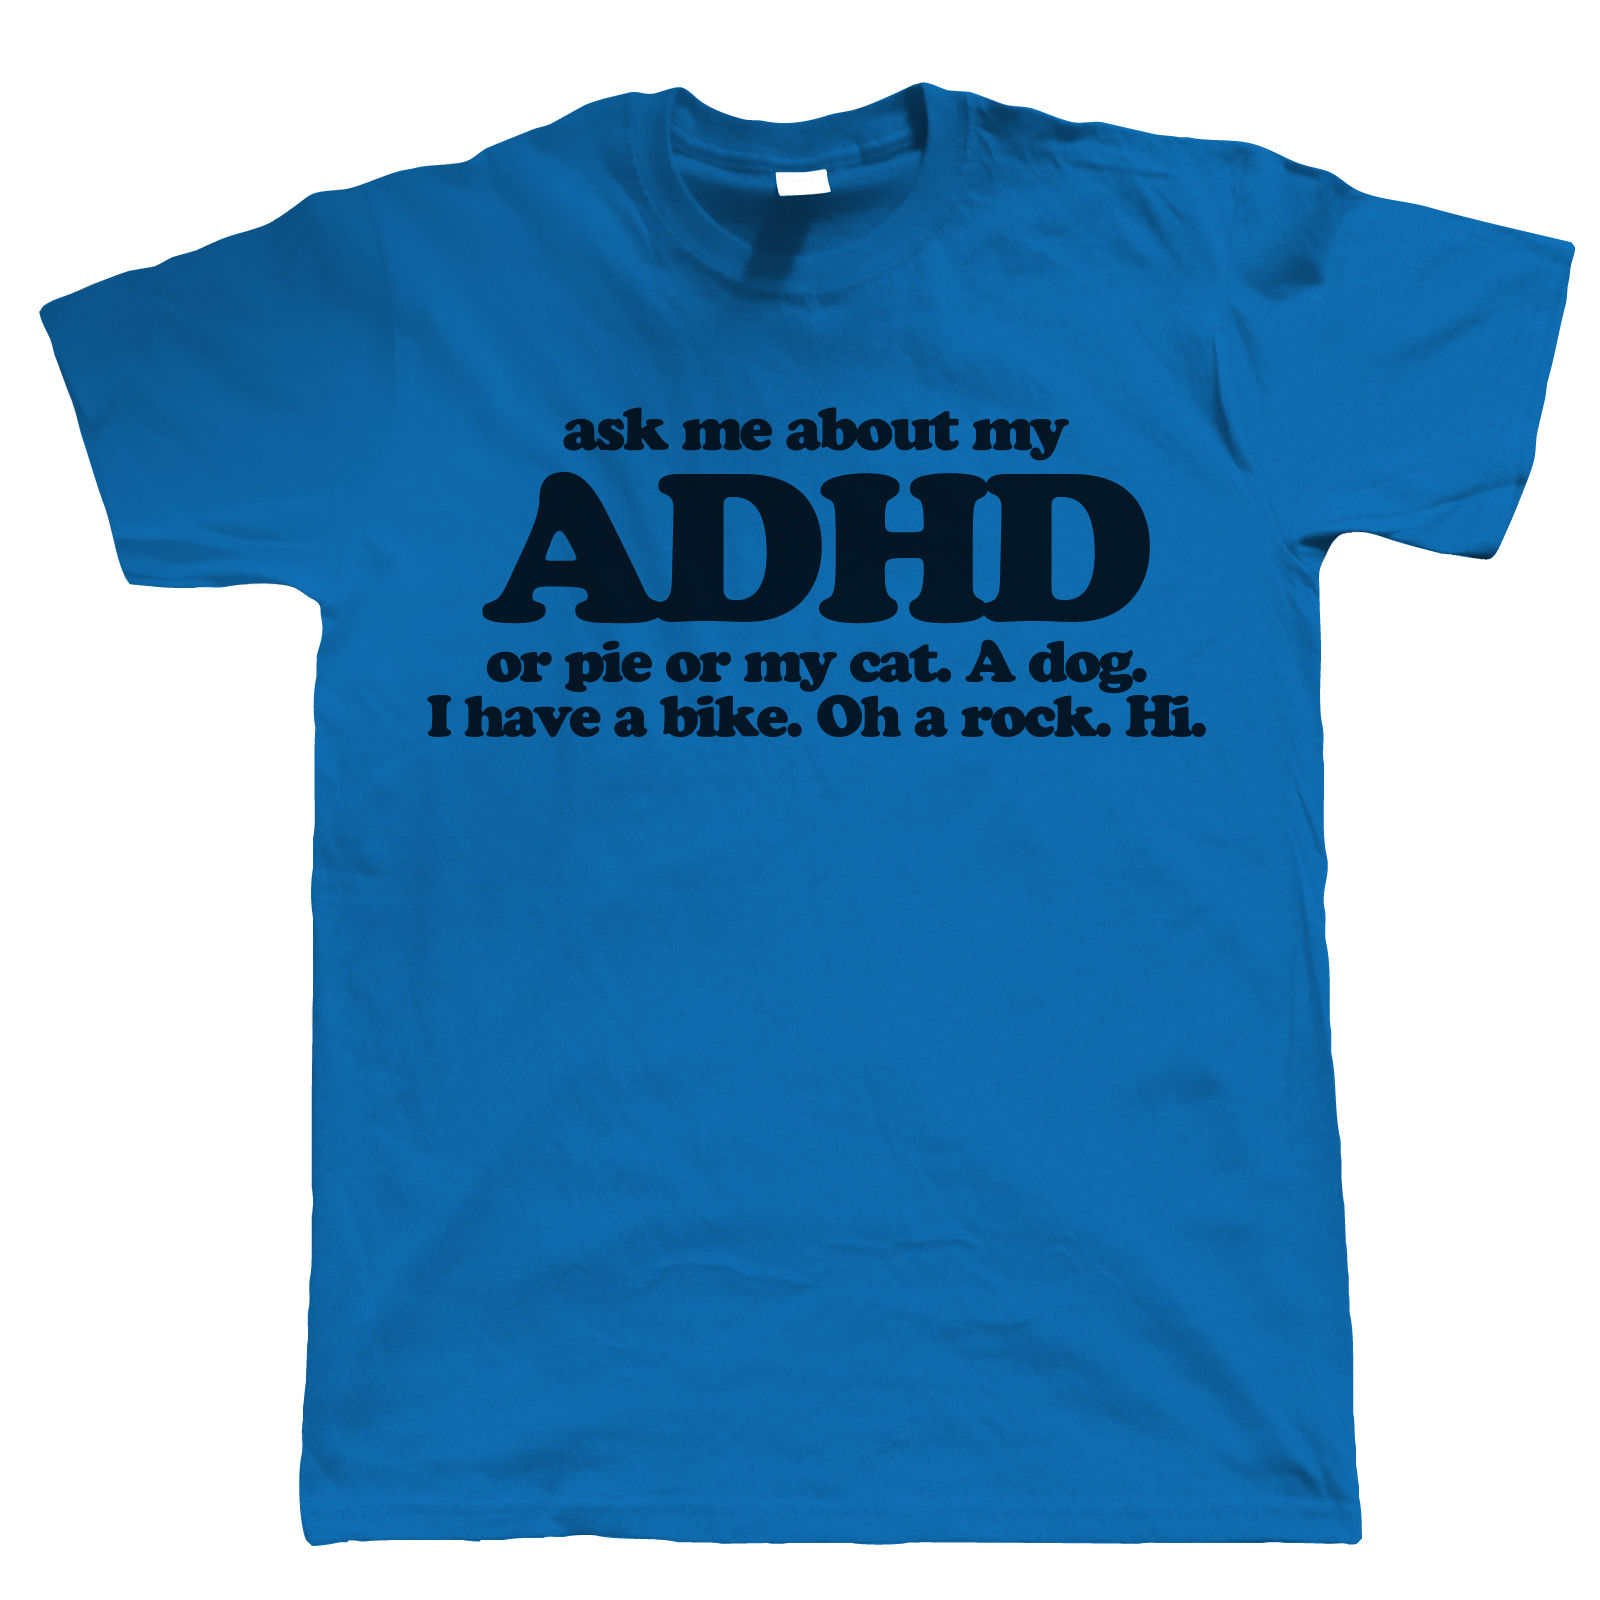 Black dog t shirt ebay - Ask Me About My Adhd Funny Mens T